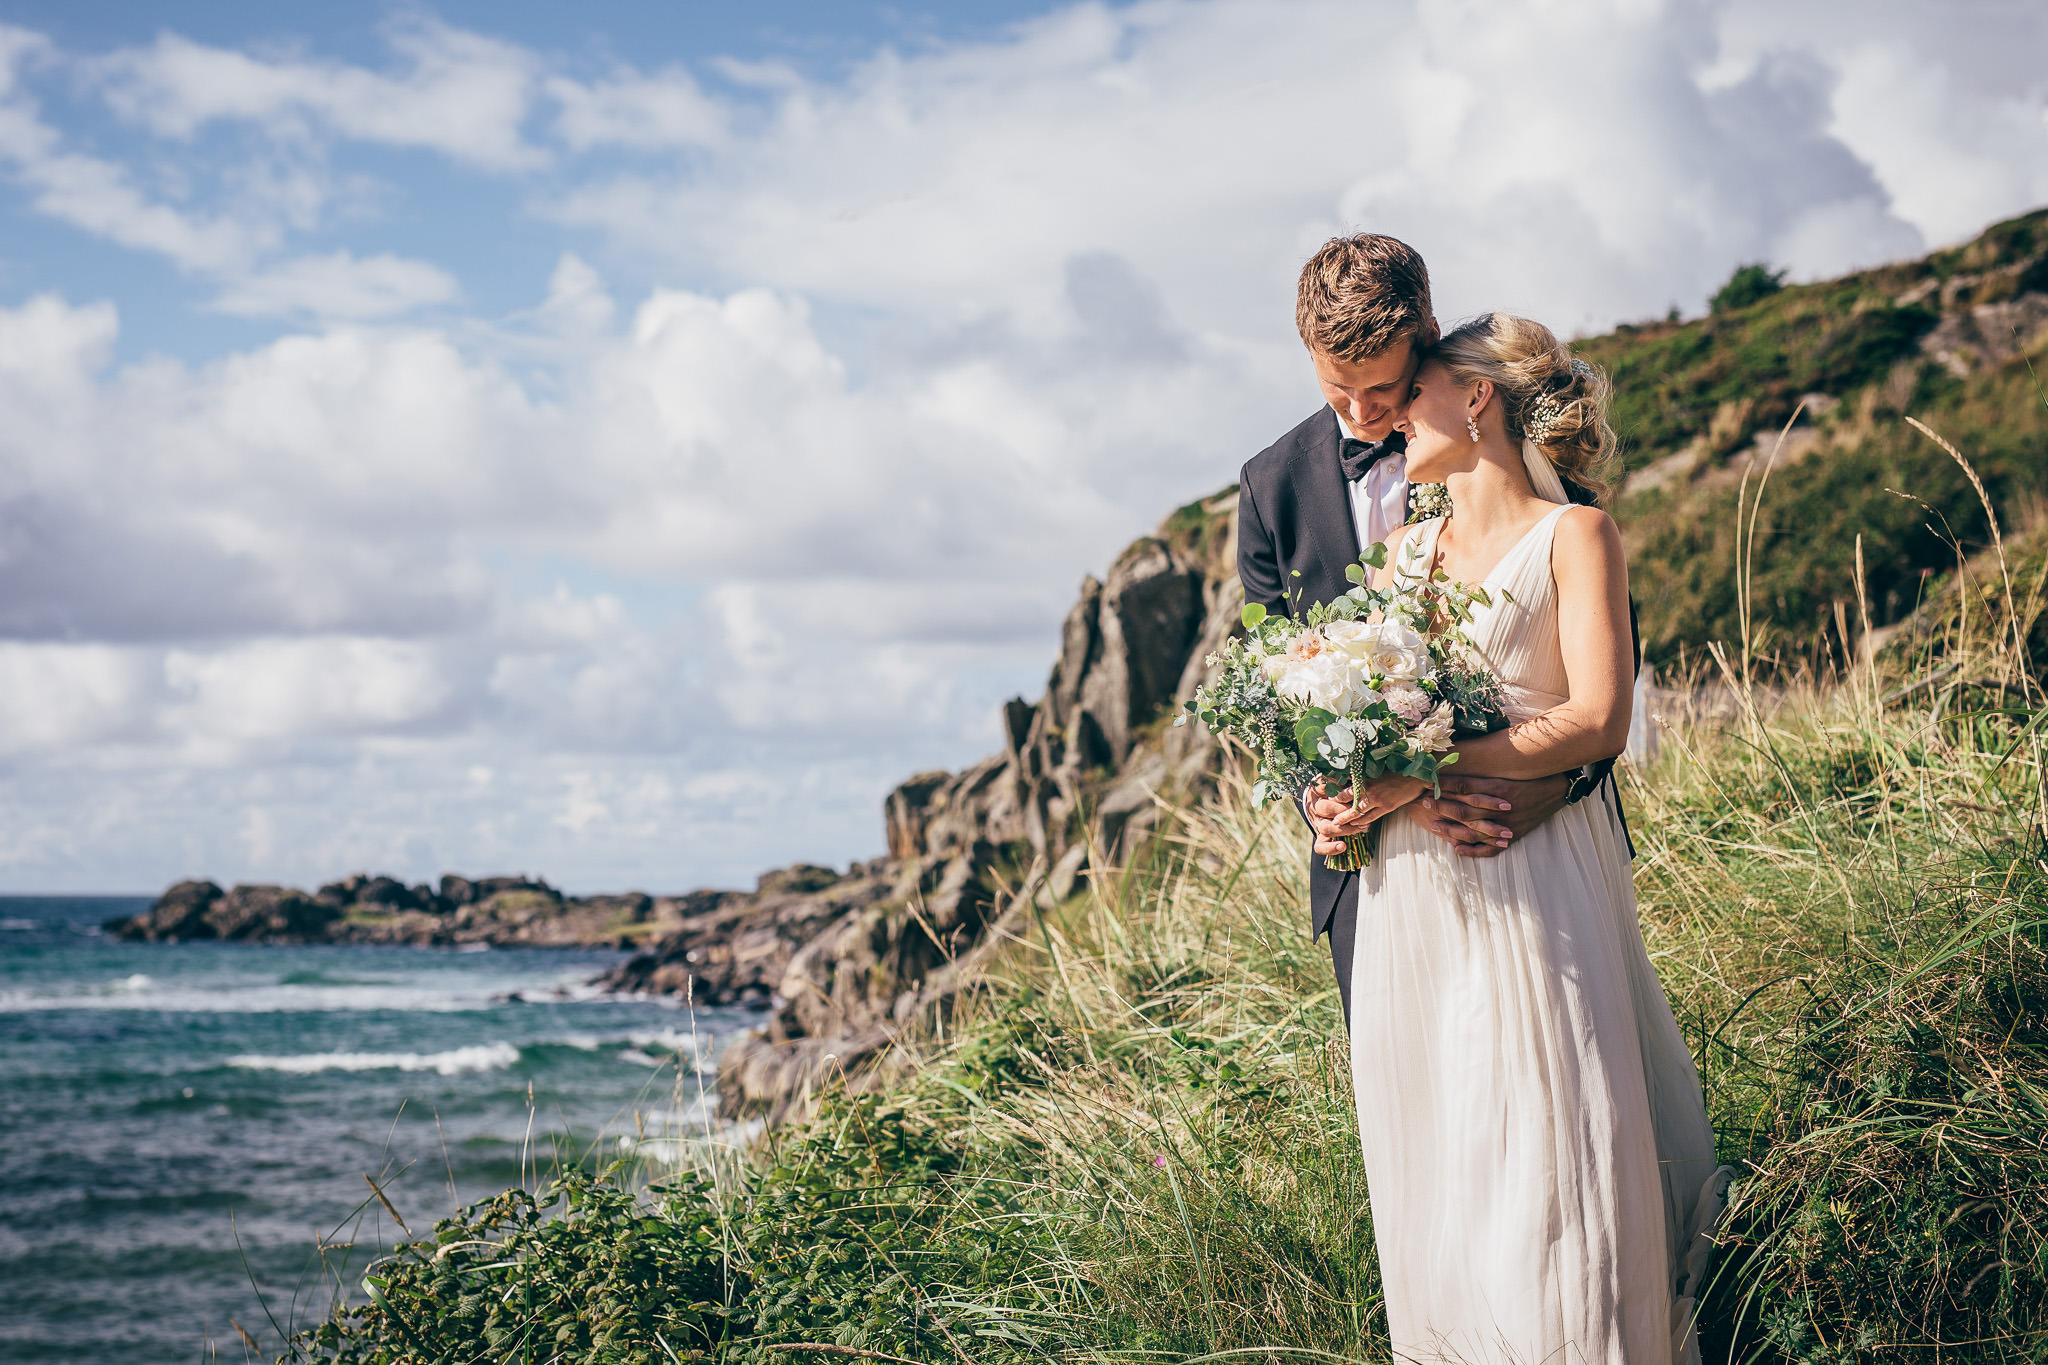 Norway+wedding+photographer+elopement+pre+wedding+Rogaland+bryllupsfotograf+Casey+Arneson-194.jpg